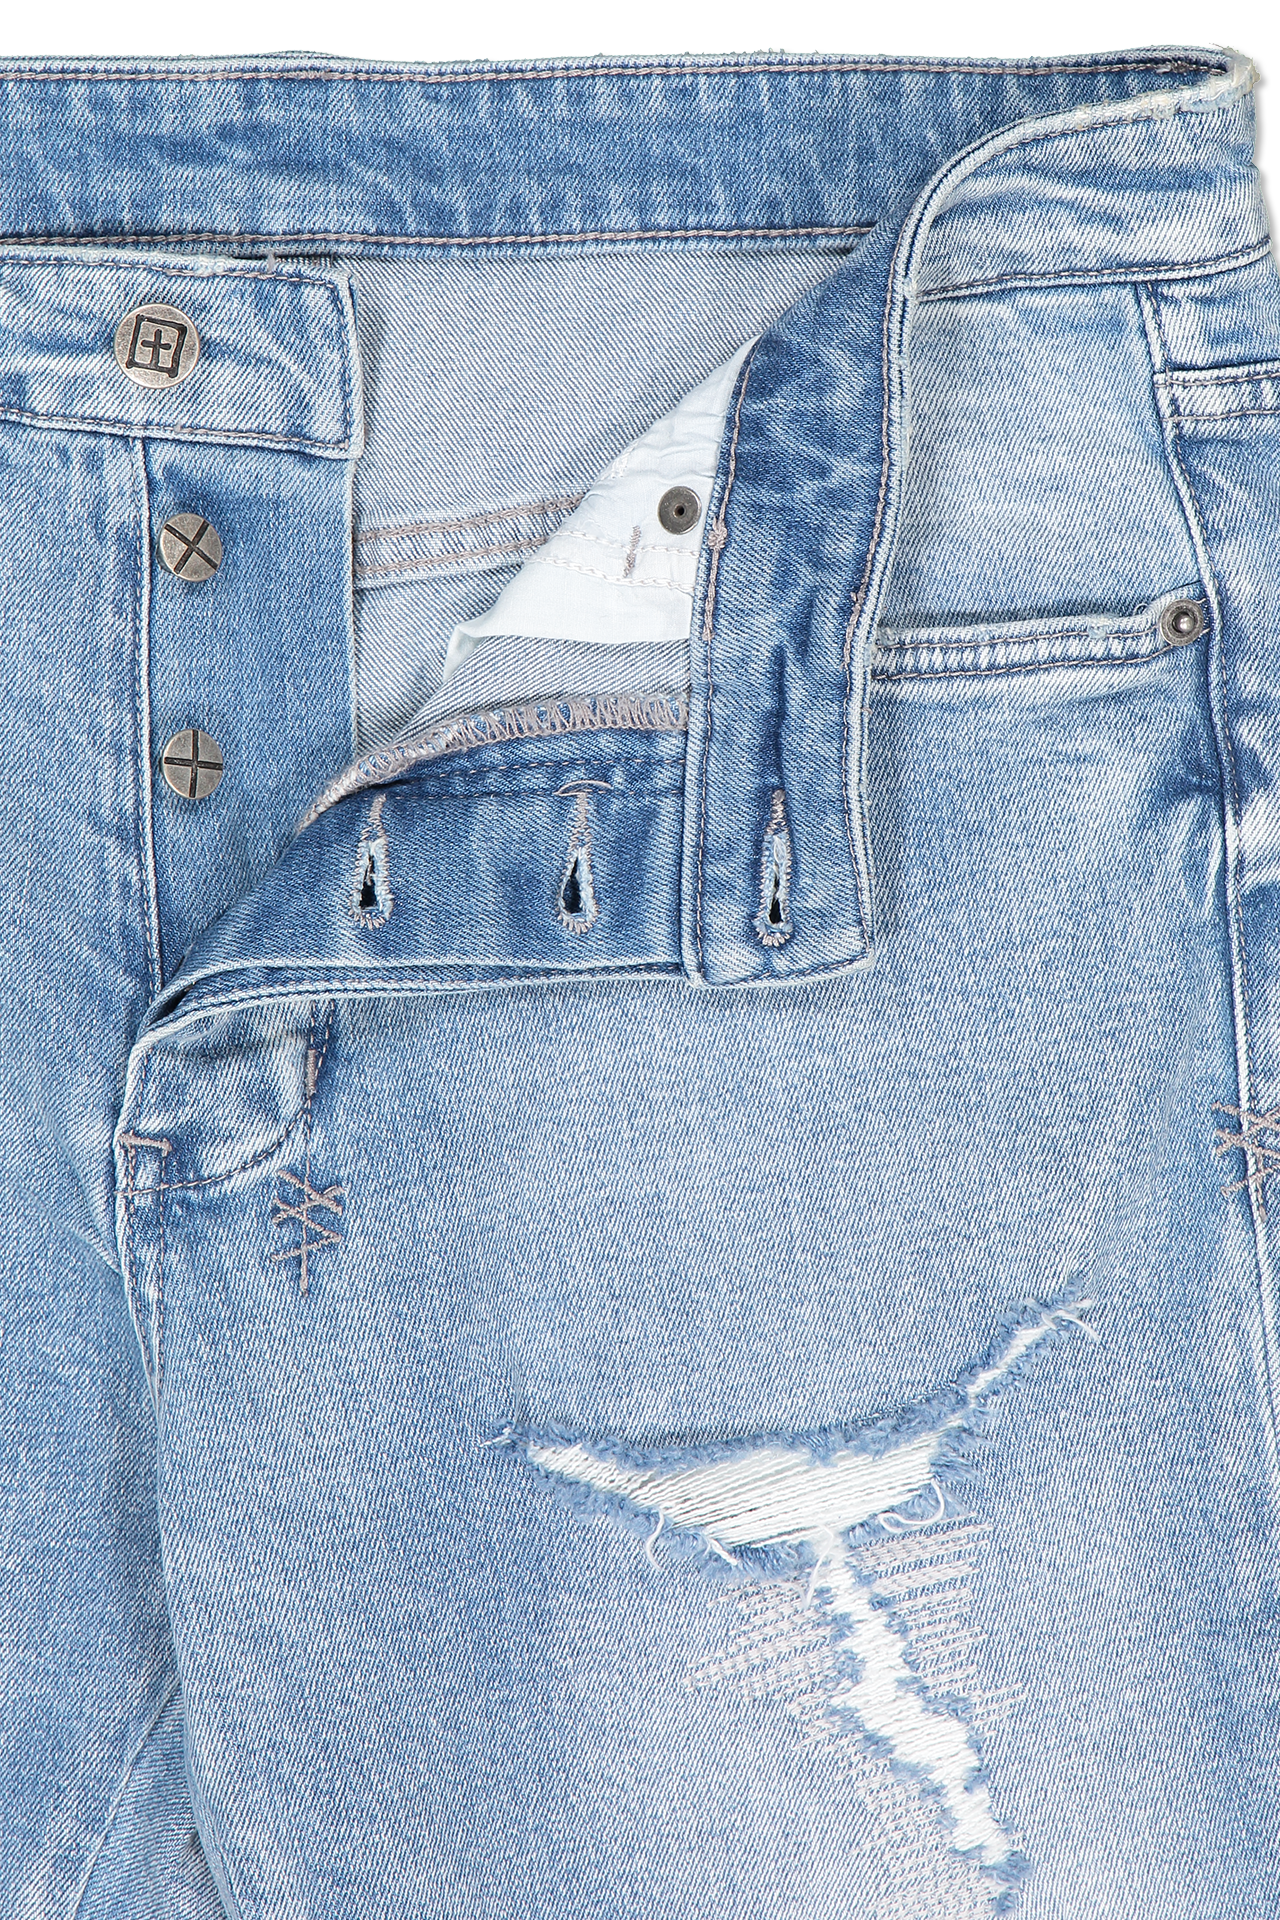 Button closure detail image of KSUBI Chitch Punk Blue Thrashed Denim